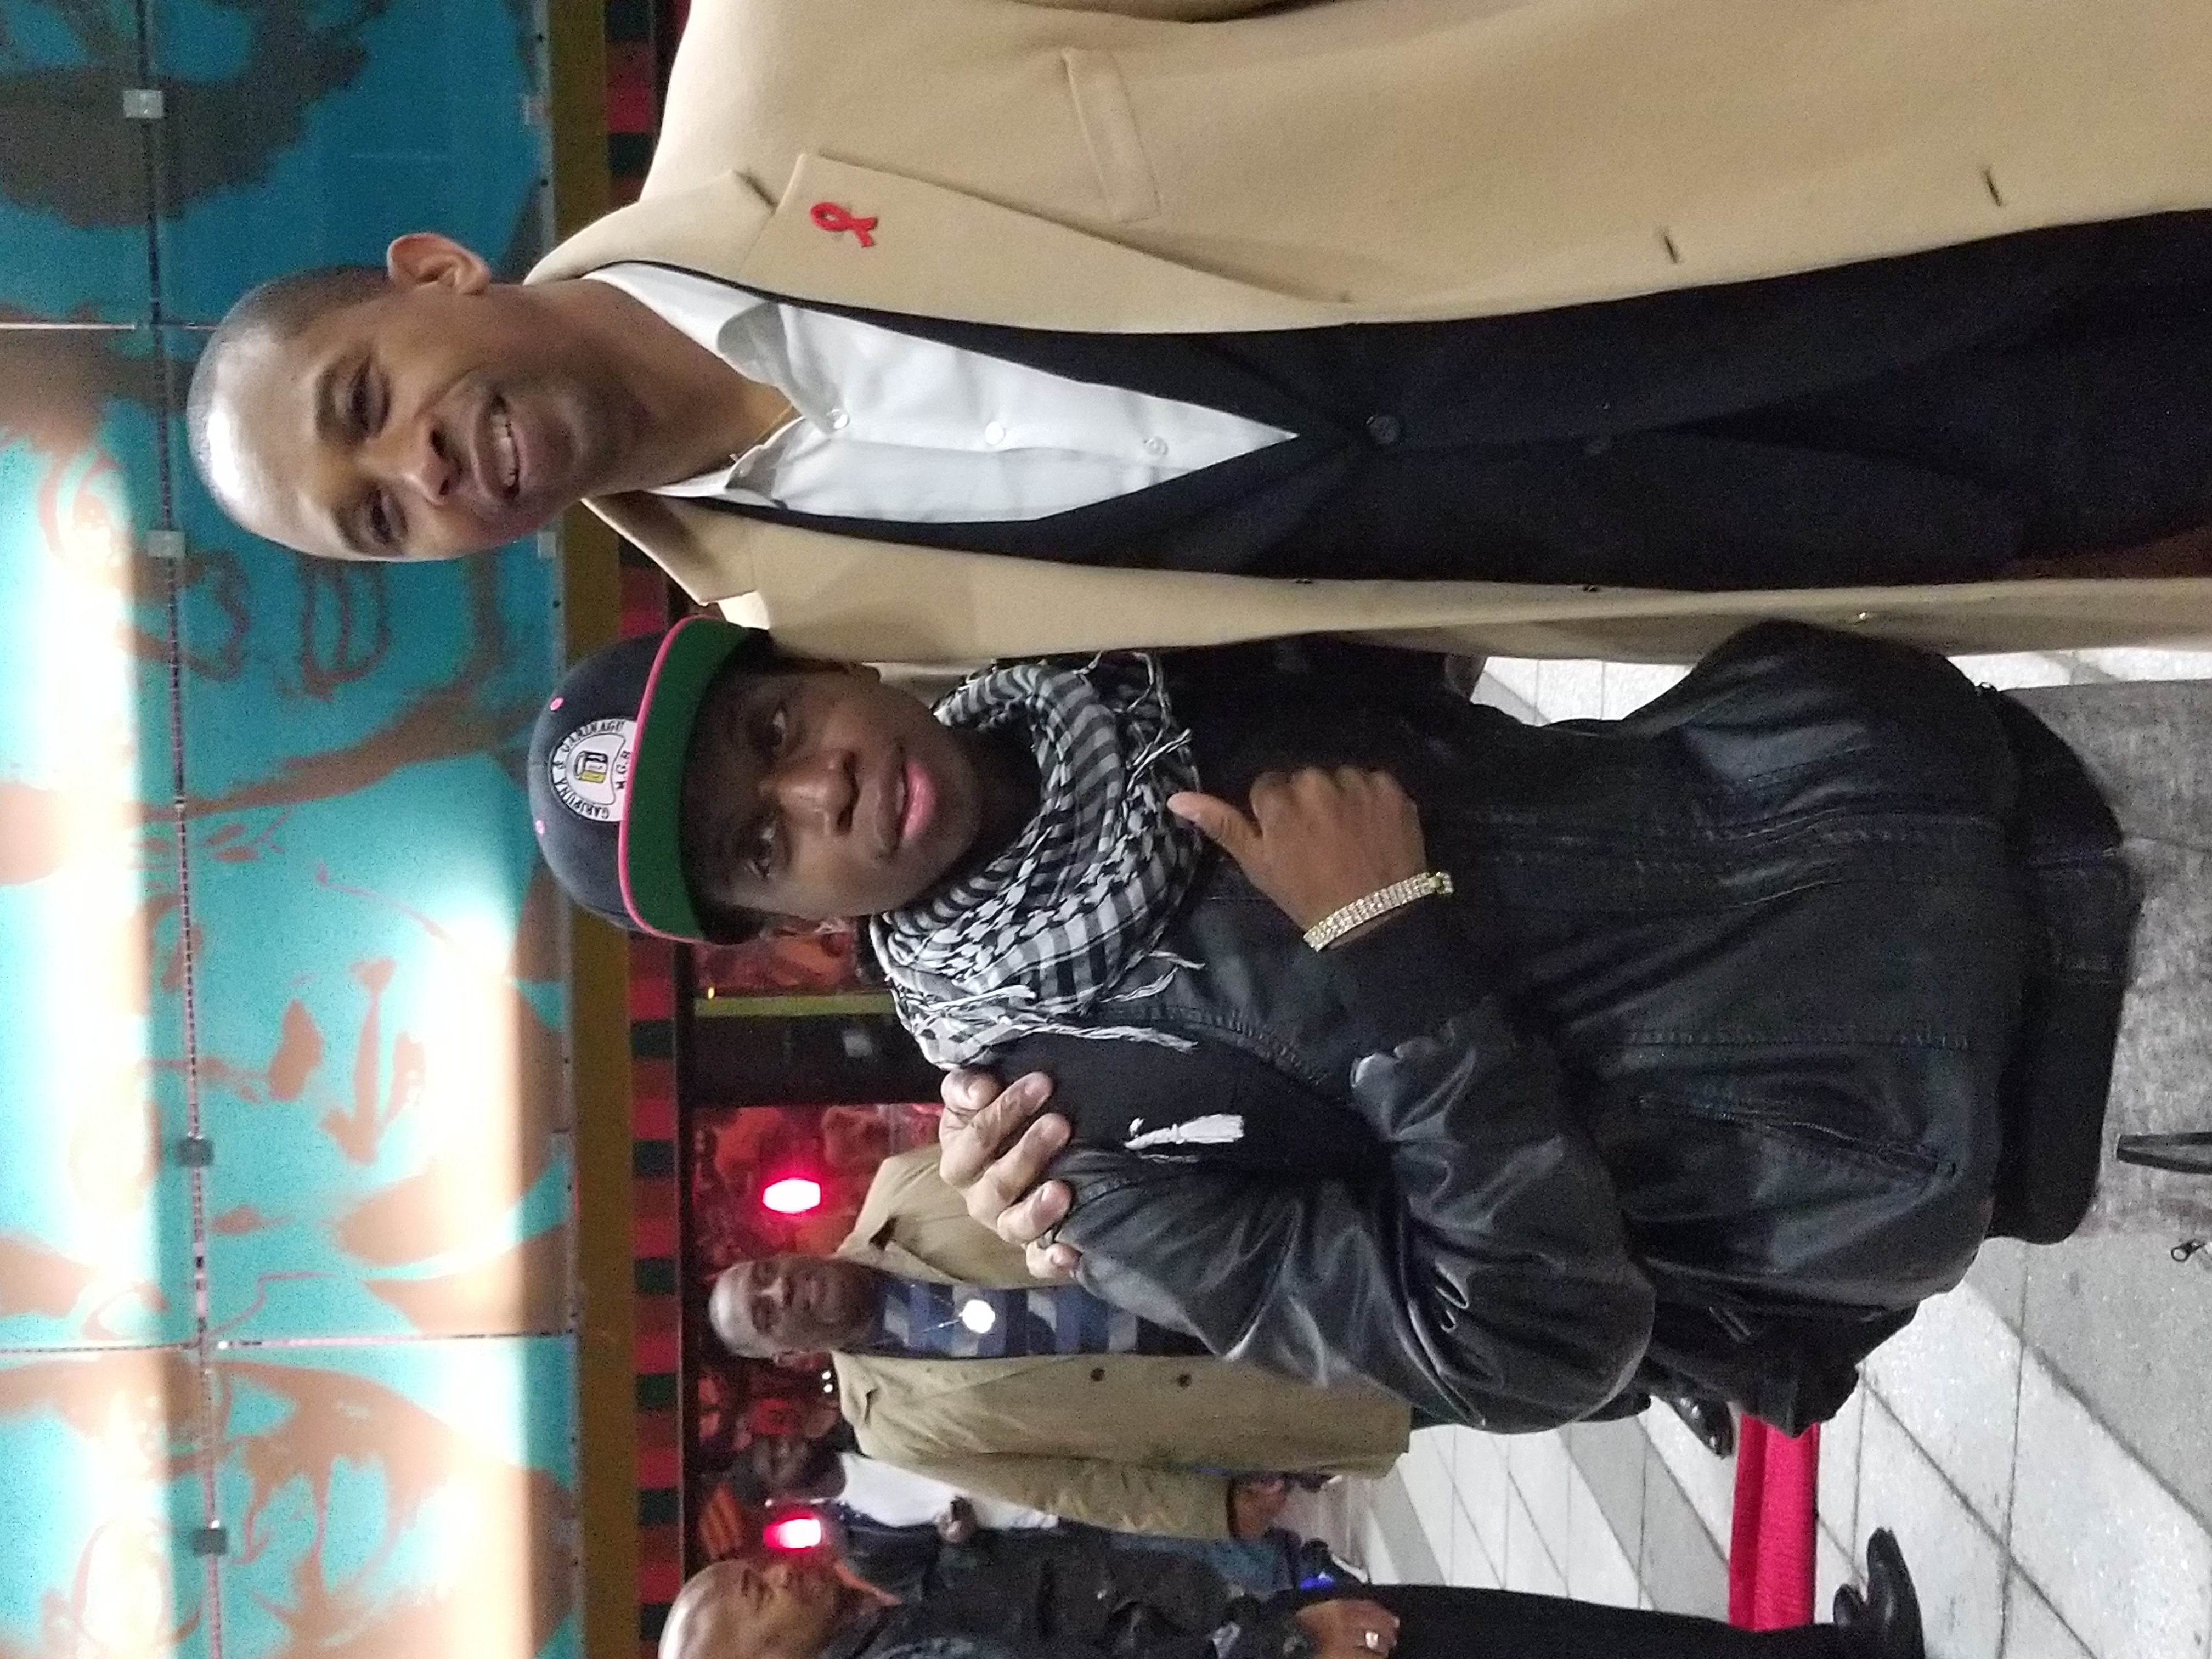 Assemblyman Walter Mosley and Youth